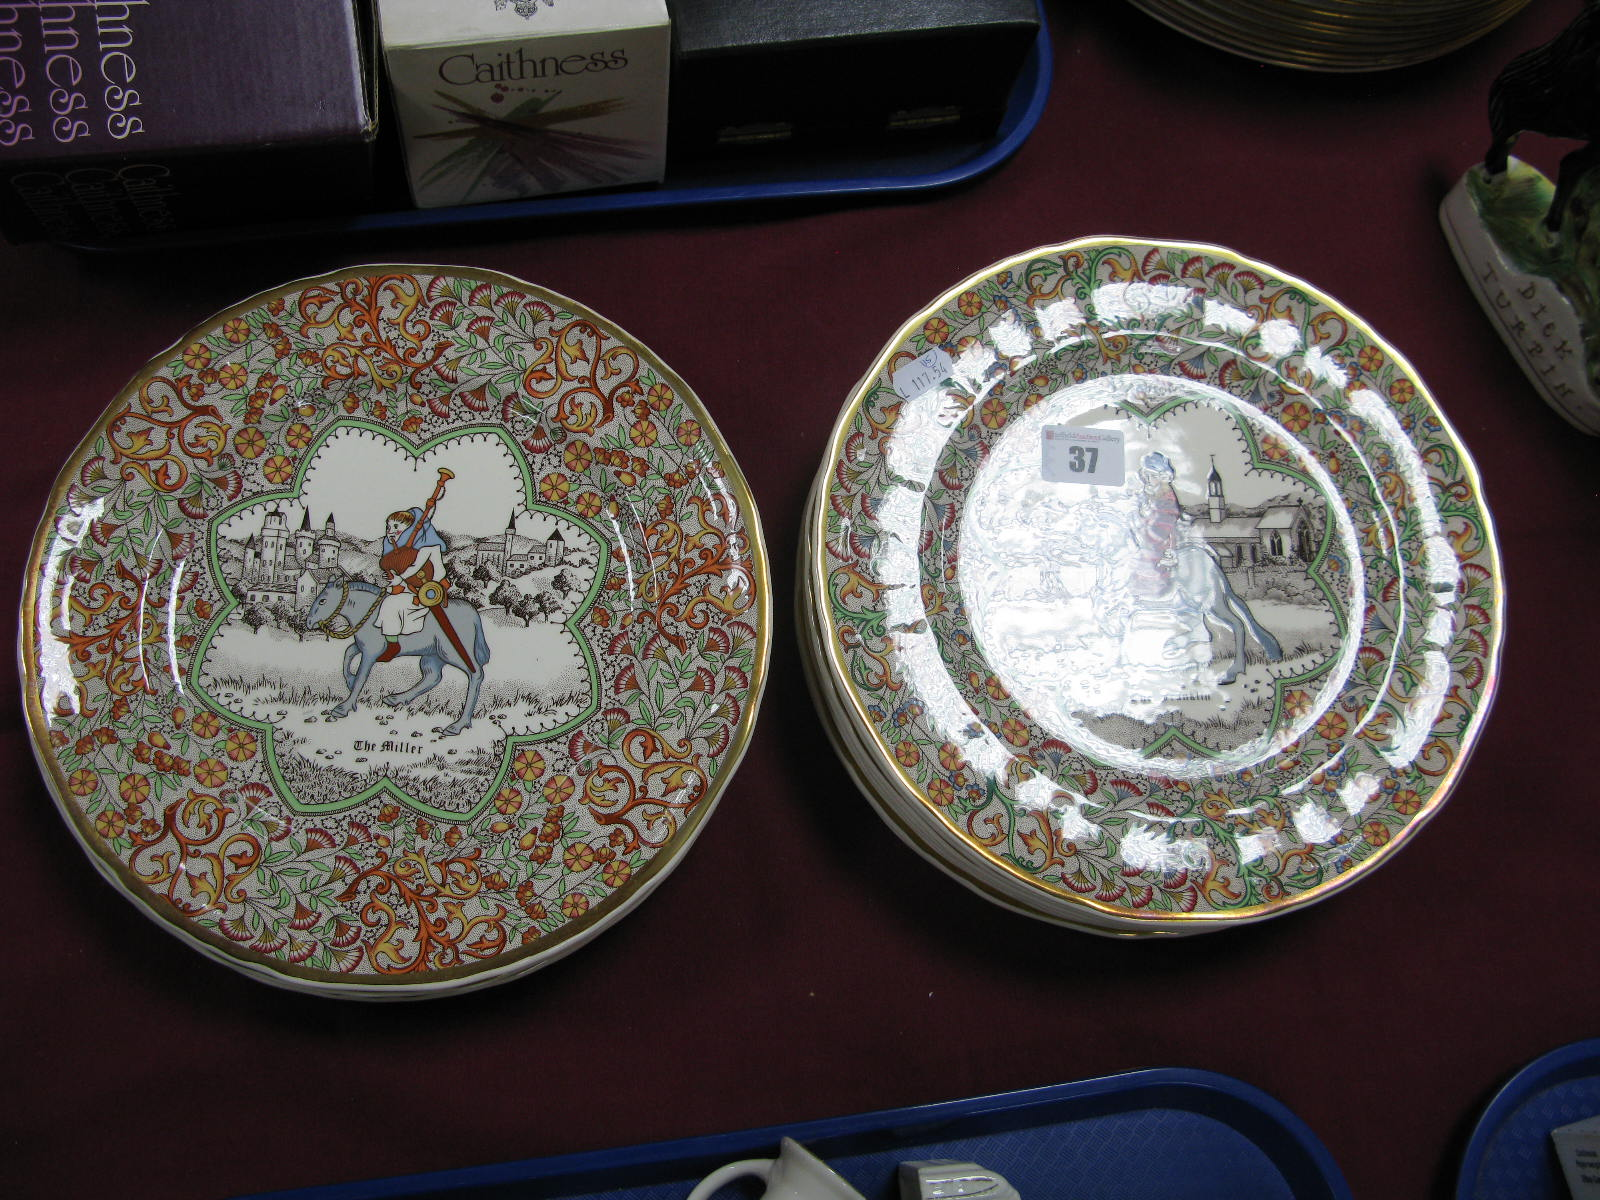 Lot 37 - Mason's Chaucer's Canterbury Pigrims Plates: The Knight 1981 (3), The Nuns Priest 1982 (2), The